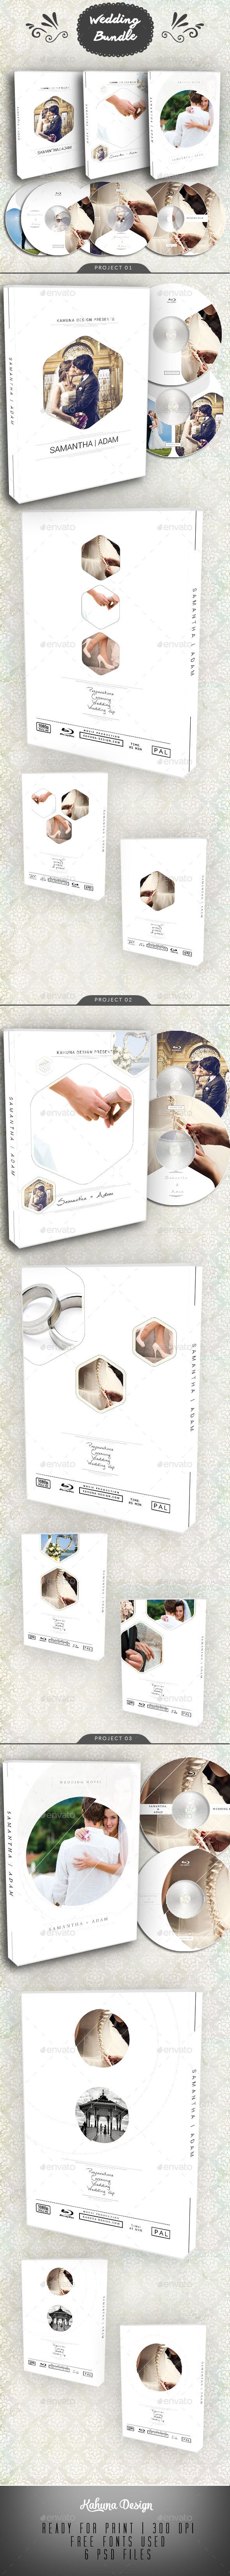 Wedding DVD / Blu-Ray Cover Bundle 2  #wedding cover #wedding invite #wedding season • Click here to download ! http://graphicriver.net/item/wedding-dvd-bluray-cover-bundle-2/12109980?s_rank=158&ref=pxcr